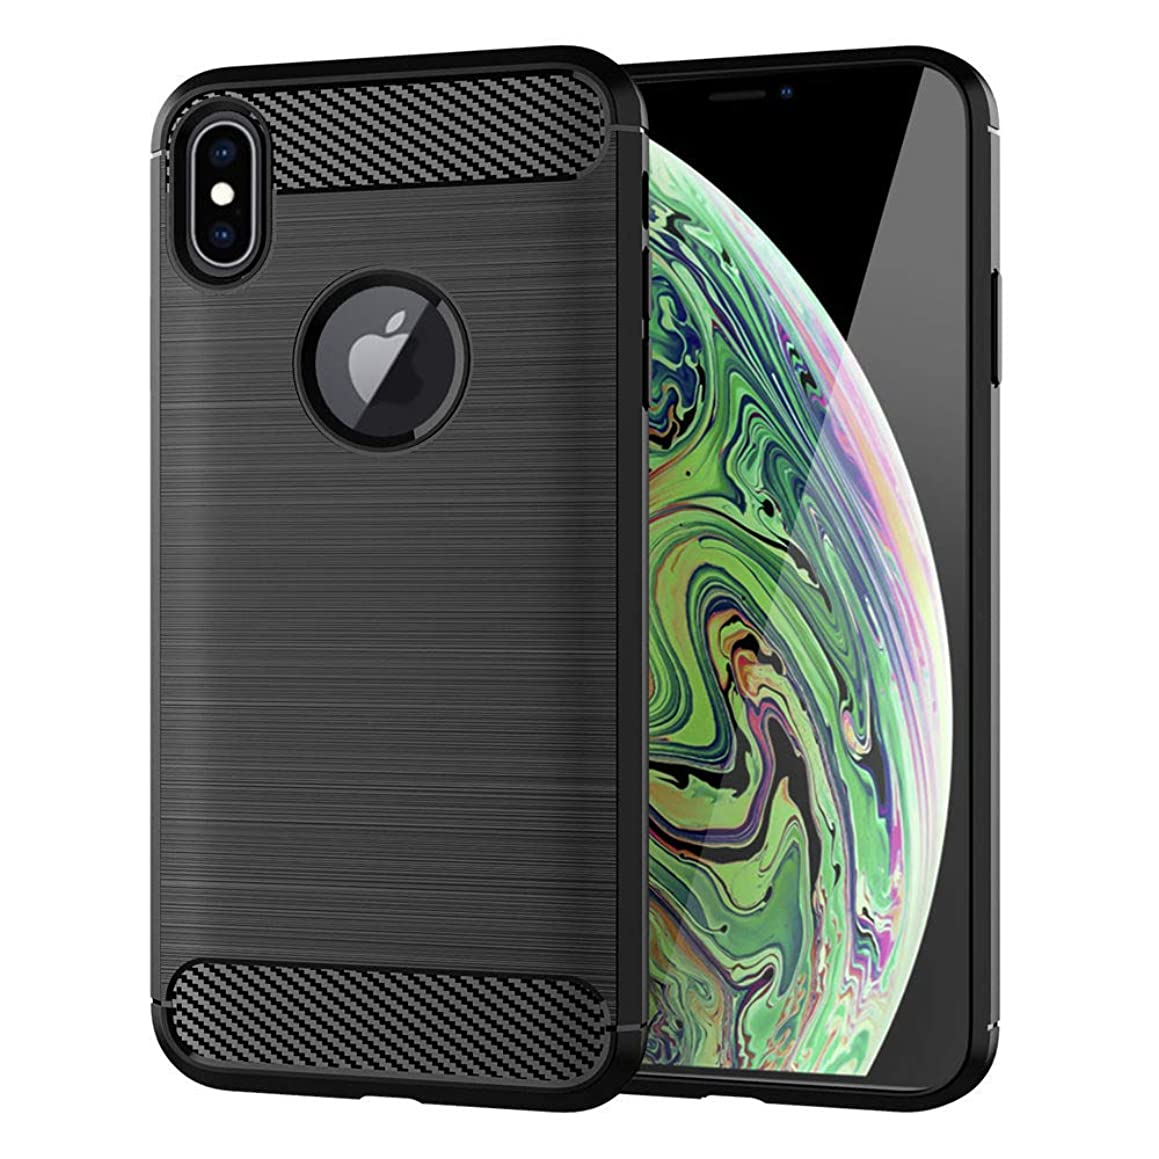 Moment Dextrad for iPhone Xs Max Case,Anti-Fingerprint Protective Bumper Soft TPU Cover with Shock-Absorption and Carbon Fiber Case Design for iPhone Xs Max + Stylus (Black)